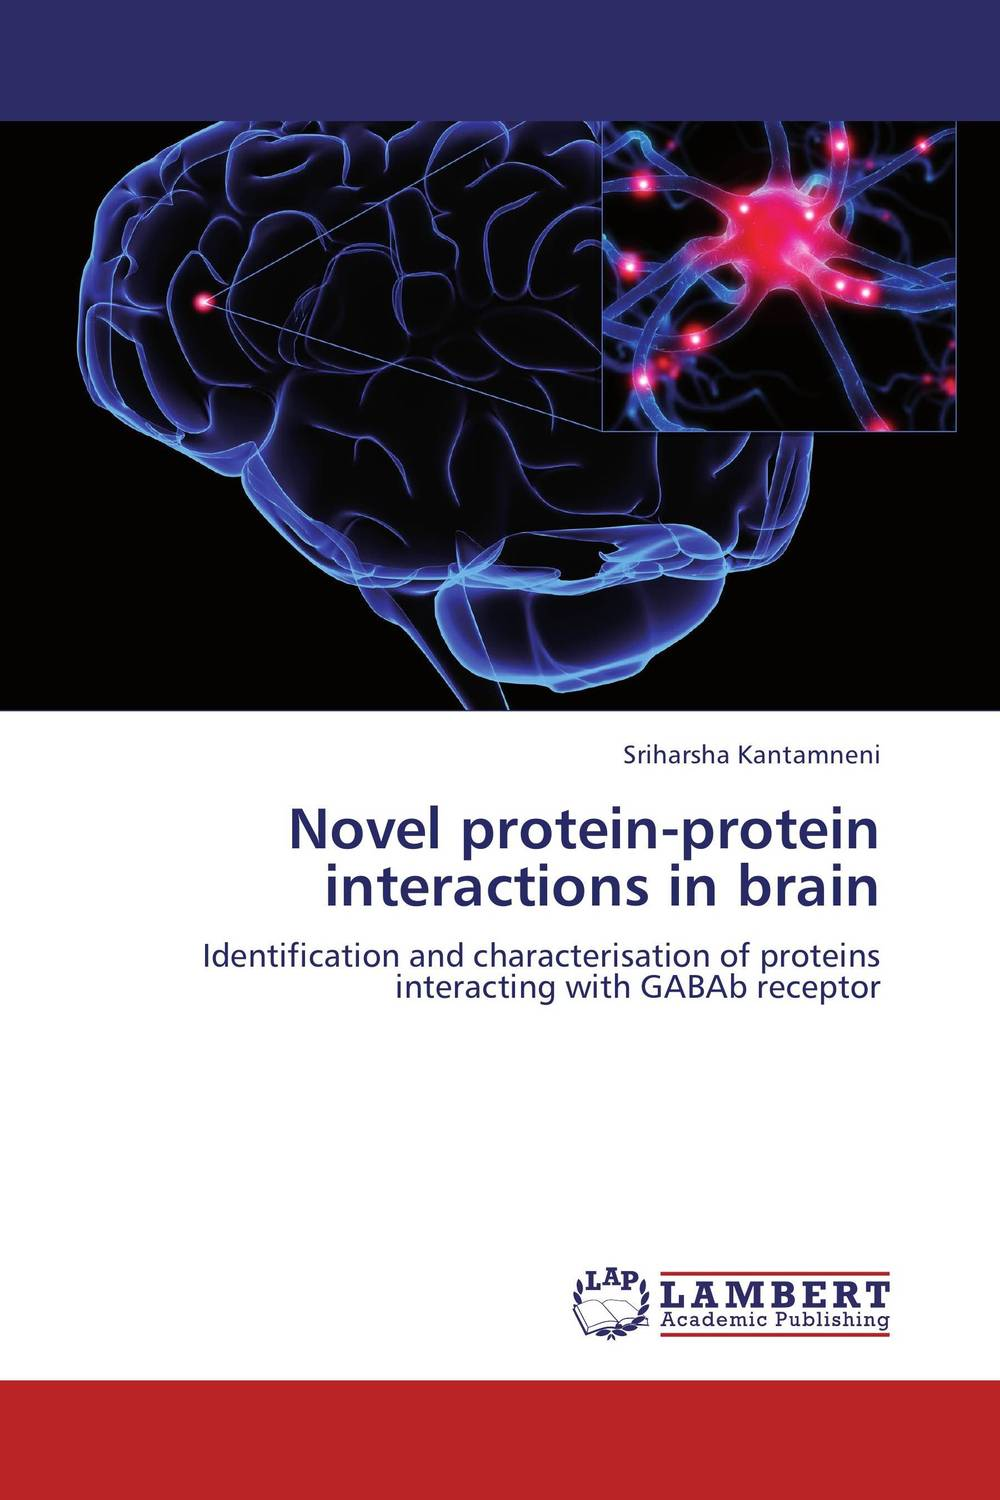 Novel protein-protein interactions in brain image receptors in radiology